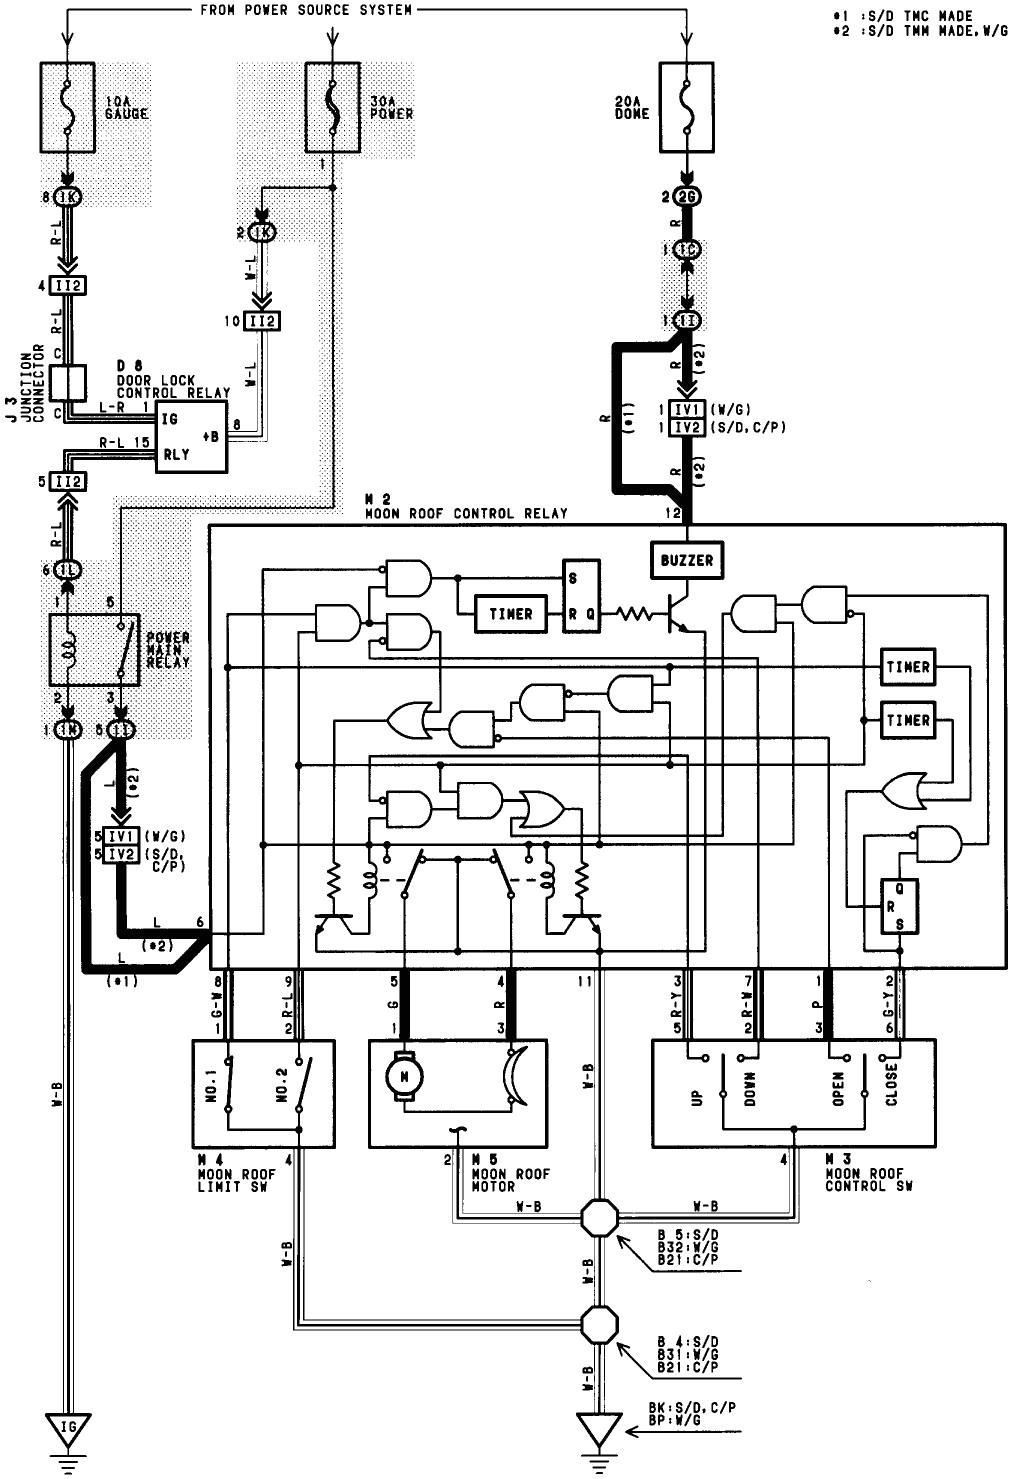 electrical wiring diagram 2007 toyota camry etc s wiring diagram save wiring diagram toyota camry lights fog lights electrical wiring